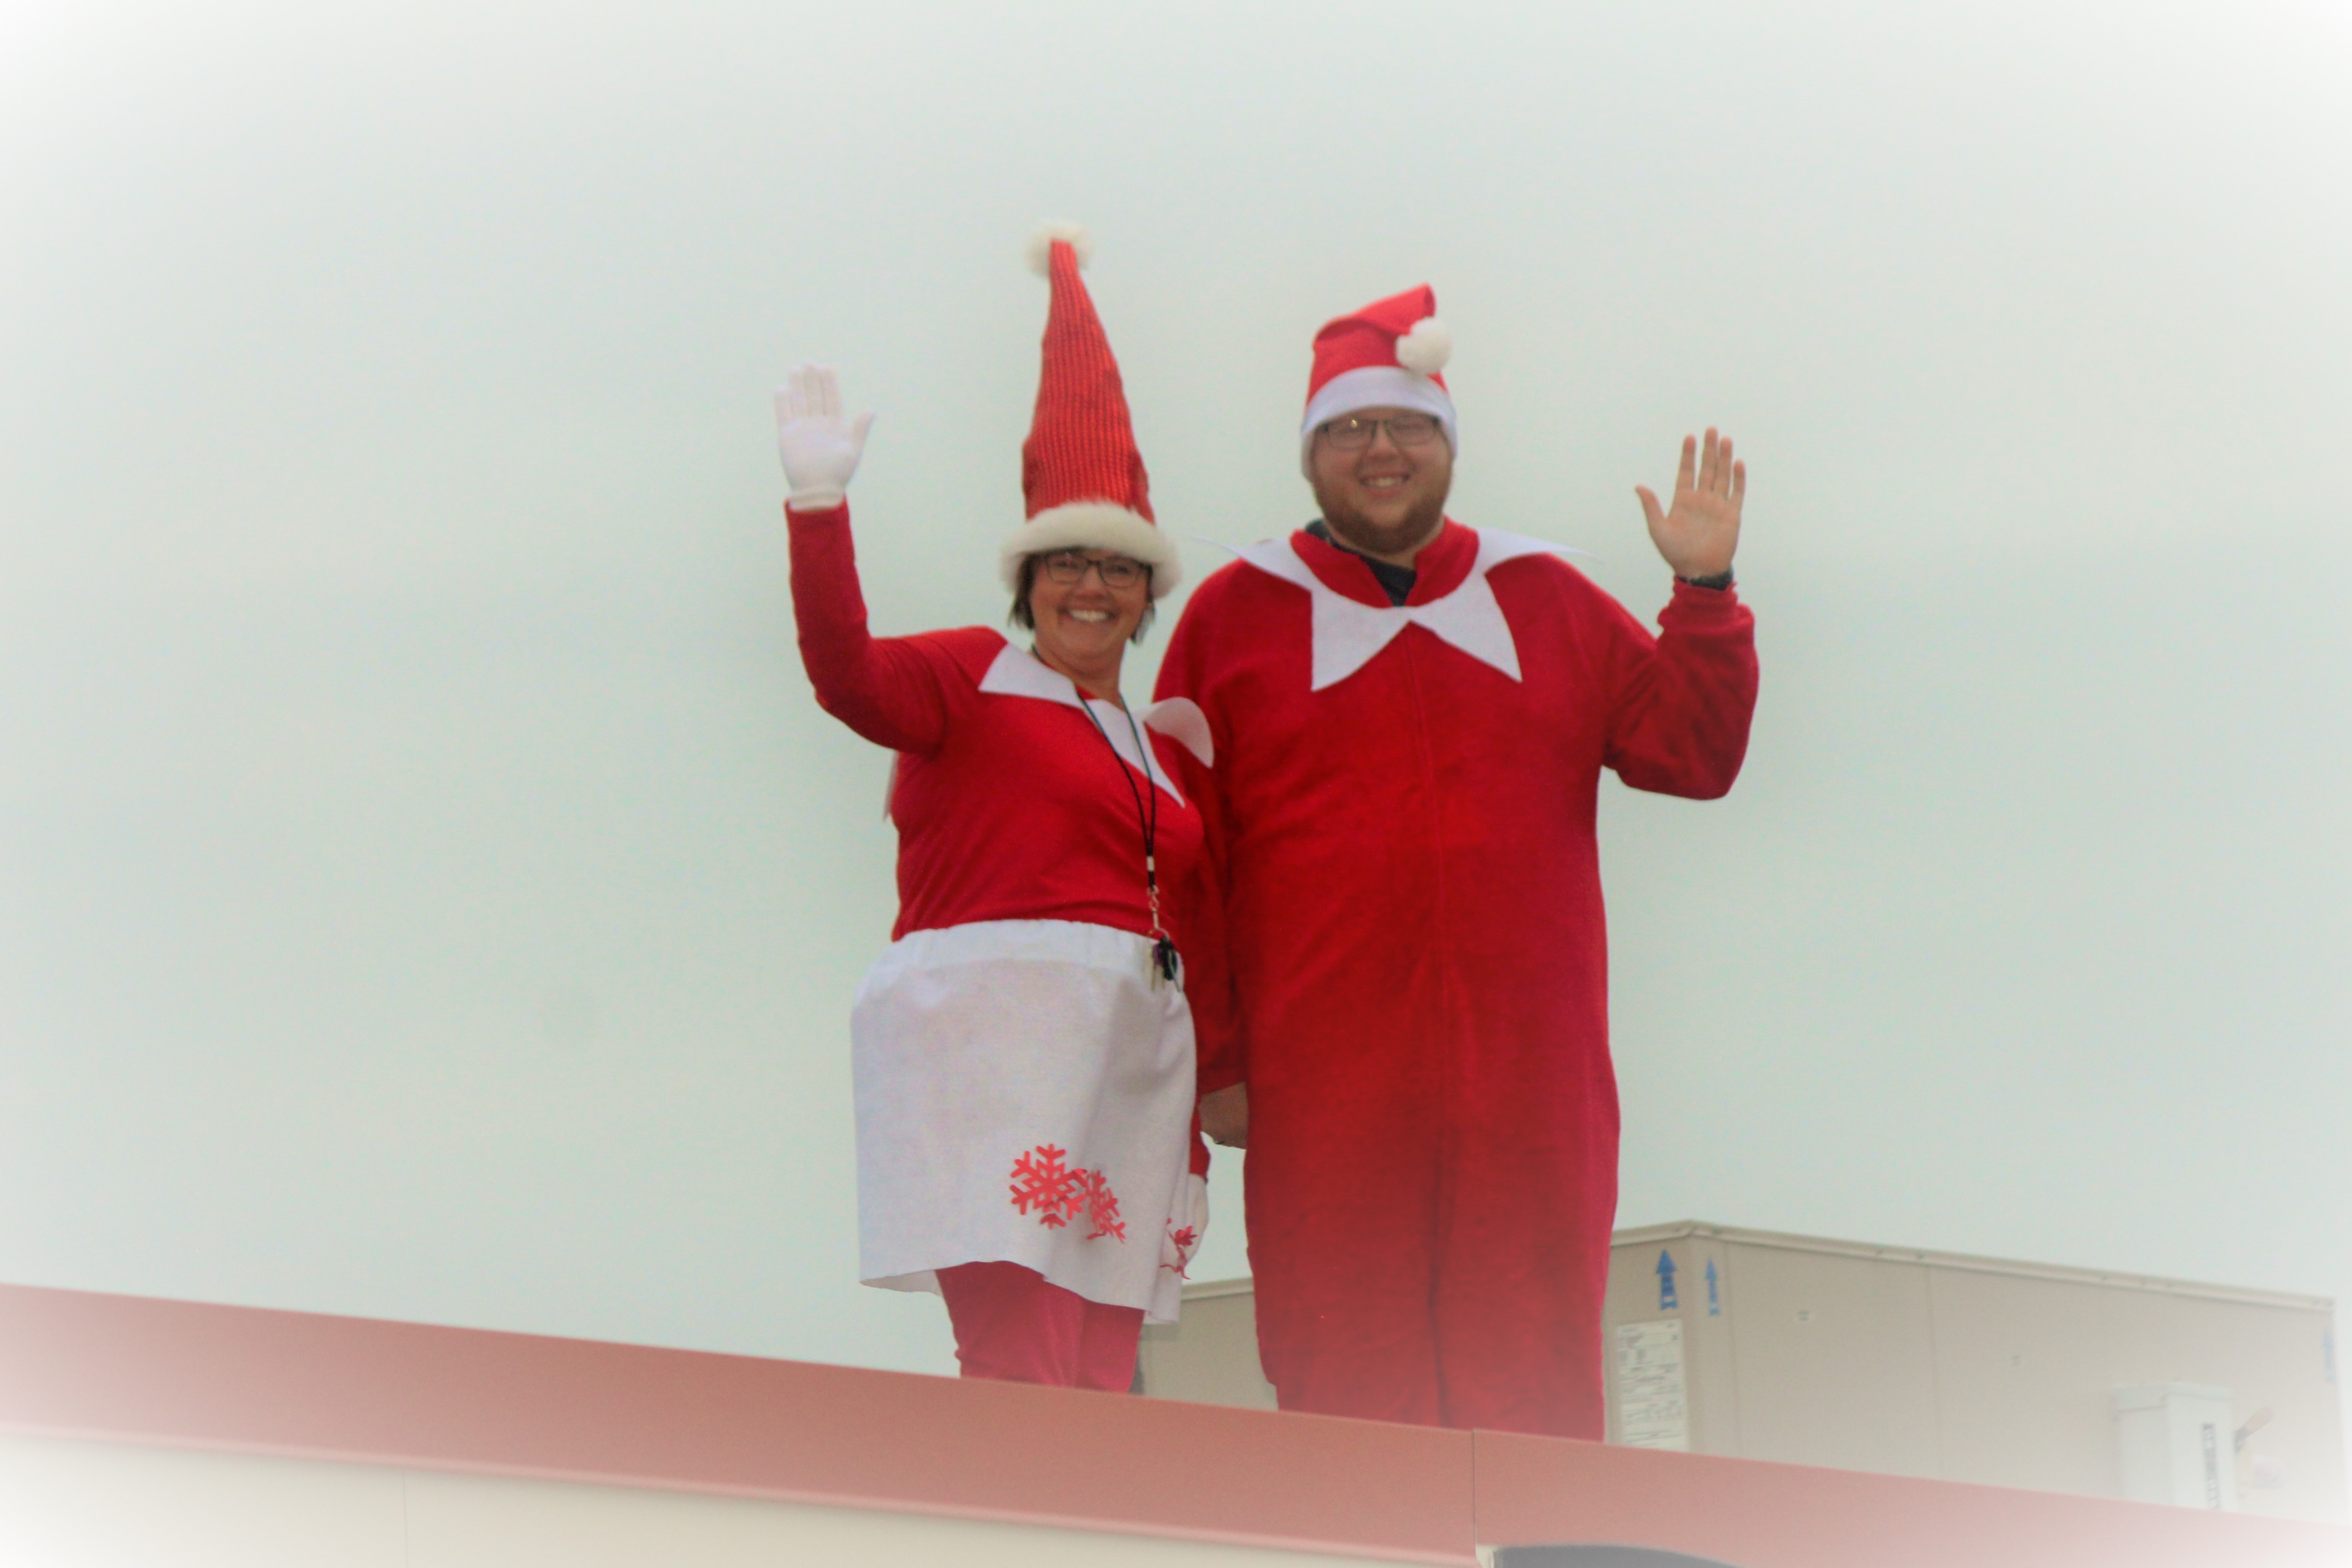 <p>New Bloomfield Elementary Principal Julie Gerloff, and P.E. teacher Nick Trammell, greeted students from the rooftop dressed as elves Friday. (Photo courtesy of Julie Gerloff)<br></p>